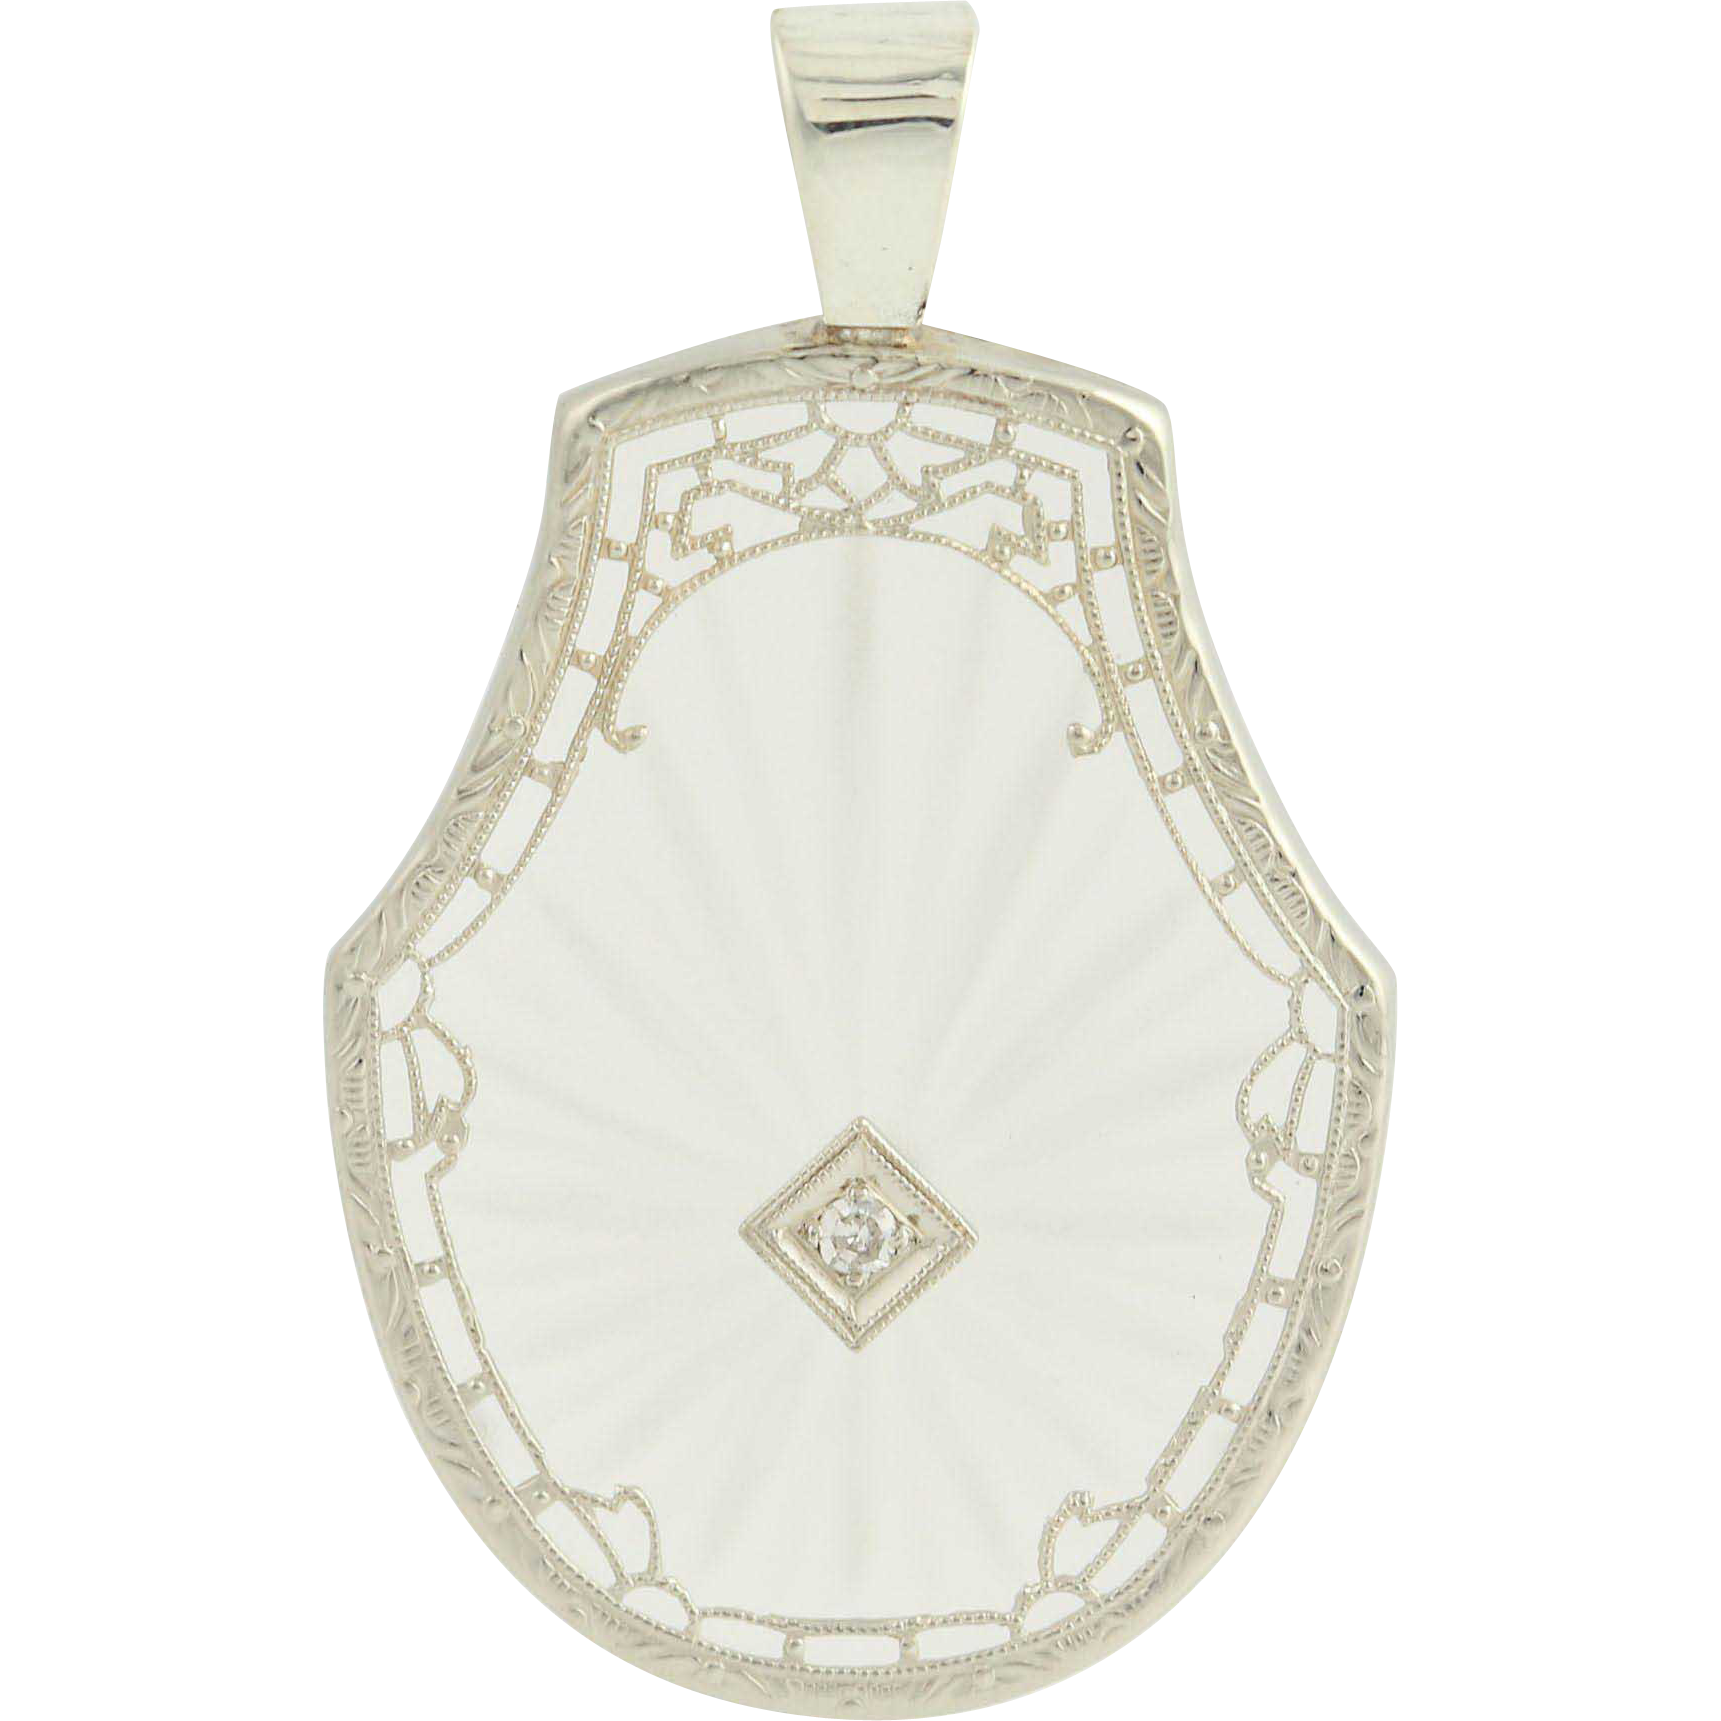 Art Deco Camphor Glass Pendant - Diamond Filigree 10k White Gold Vintage